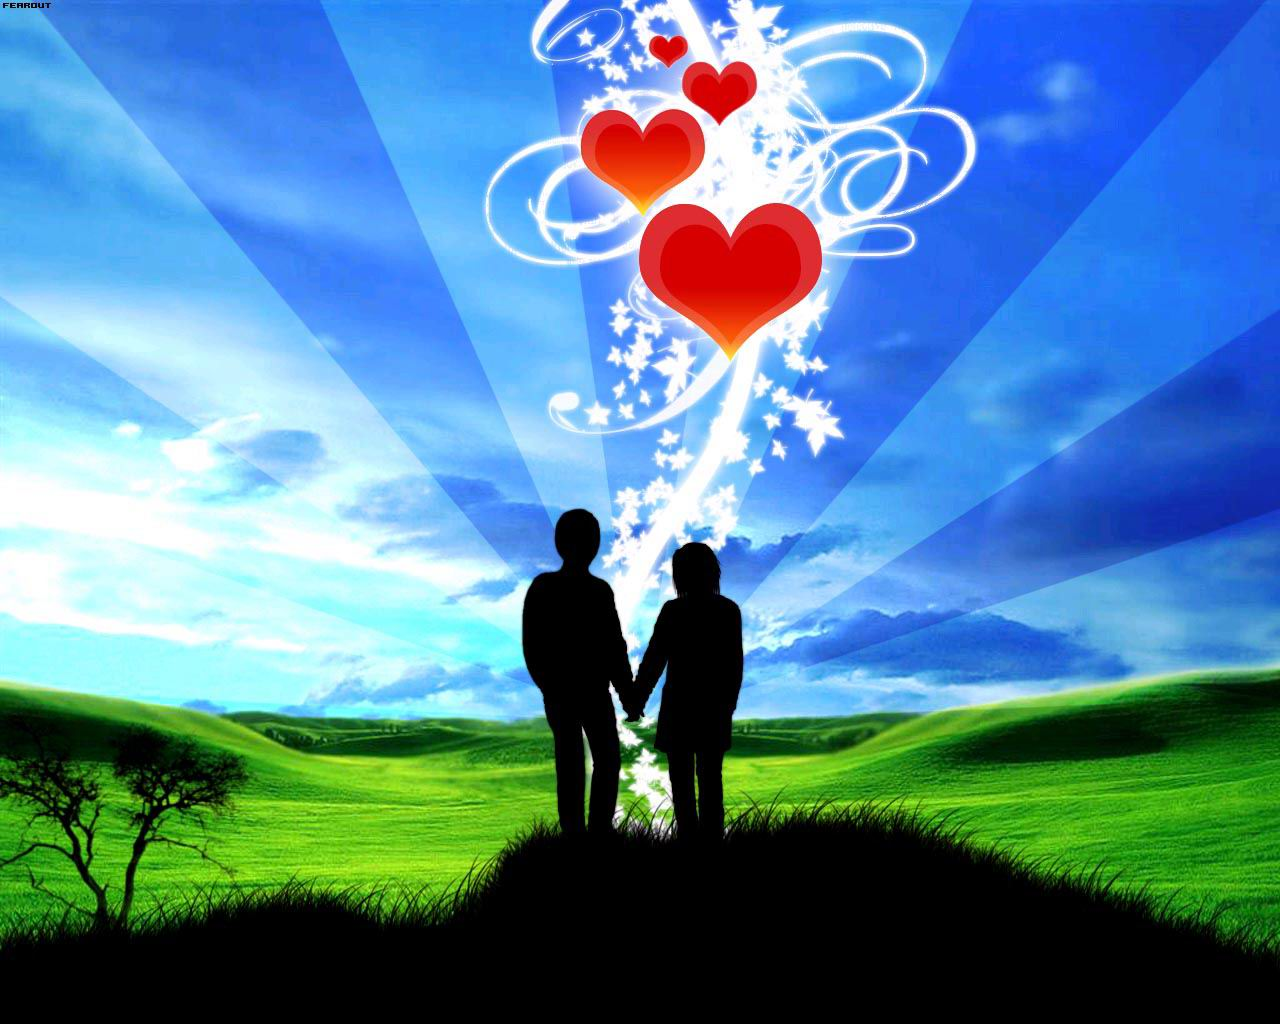 Love Life Wallpapers : Love is Life: Love wallpapers new love wallpapers latest love wallpapers 2012 love hd ...